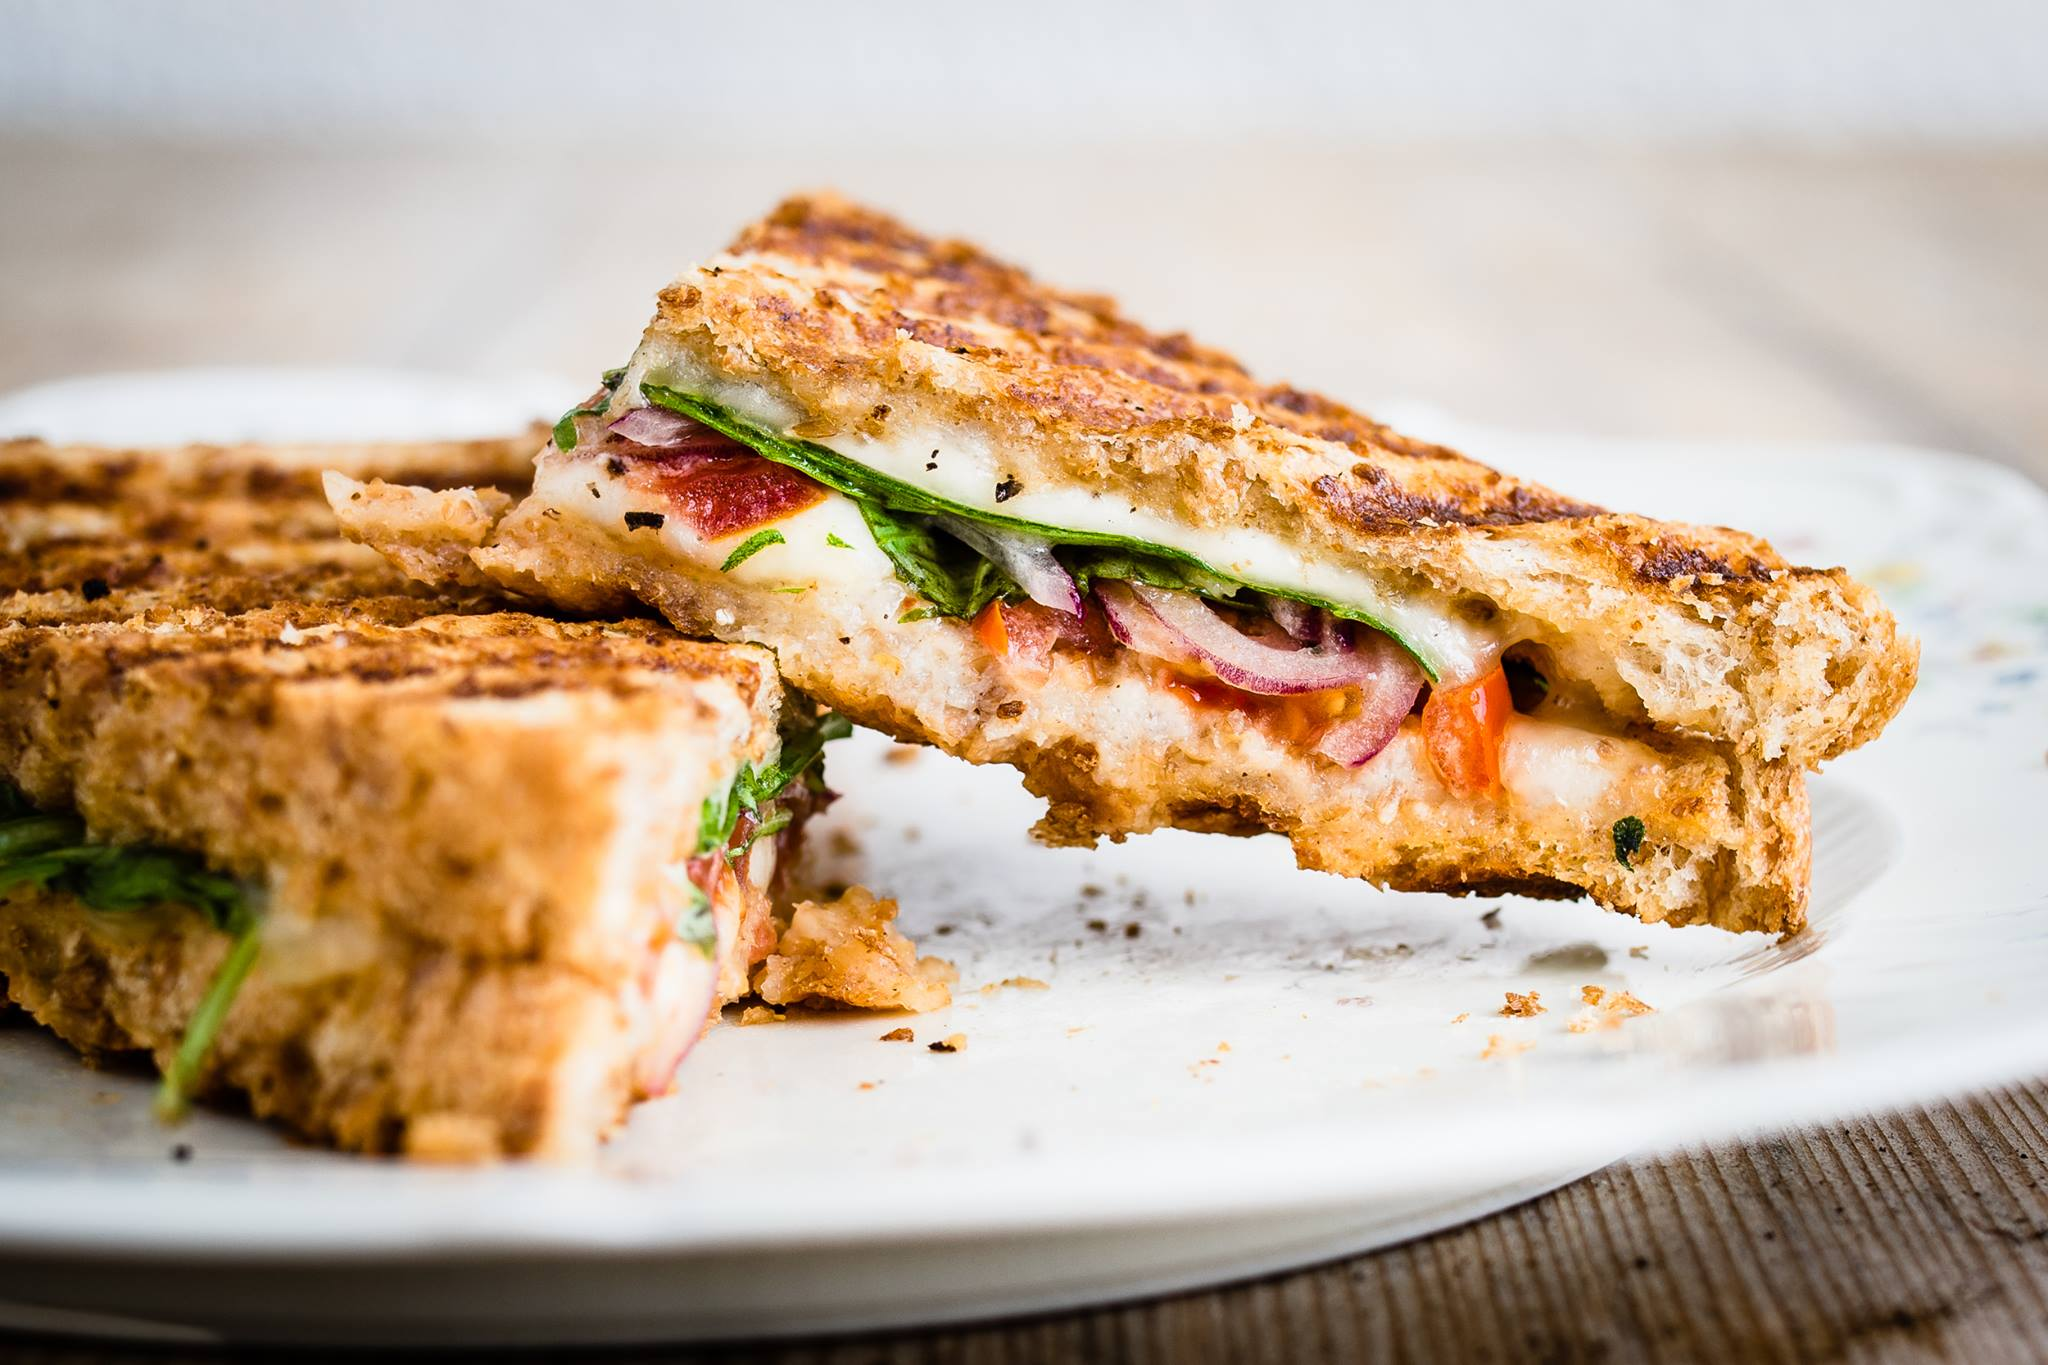 panini with spinach, tomato, onion and cheese